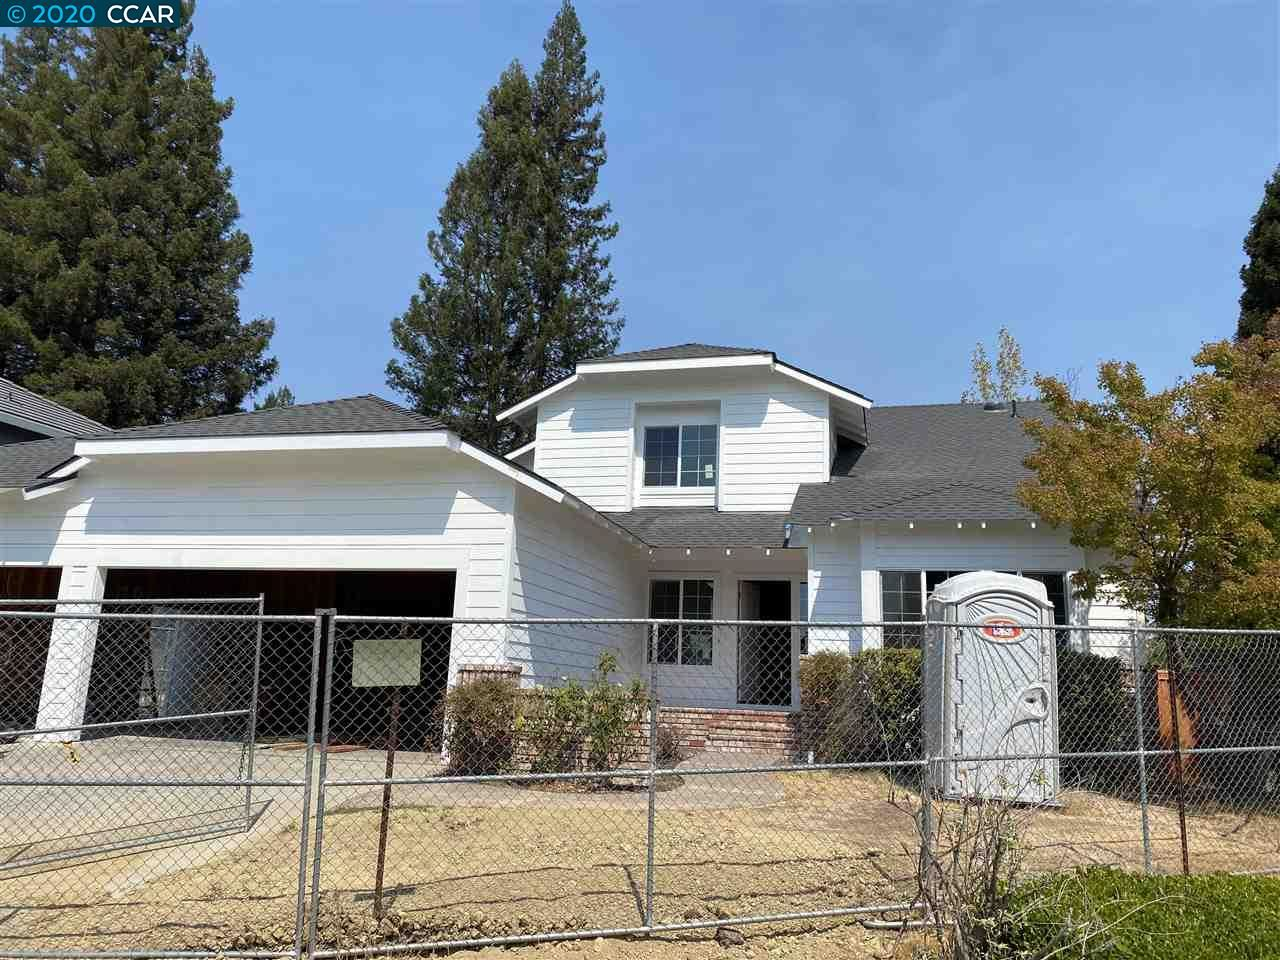 21 Old Rodgers Ranch Ct, Pleasant Hill, CA 94523 - #: 40906975